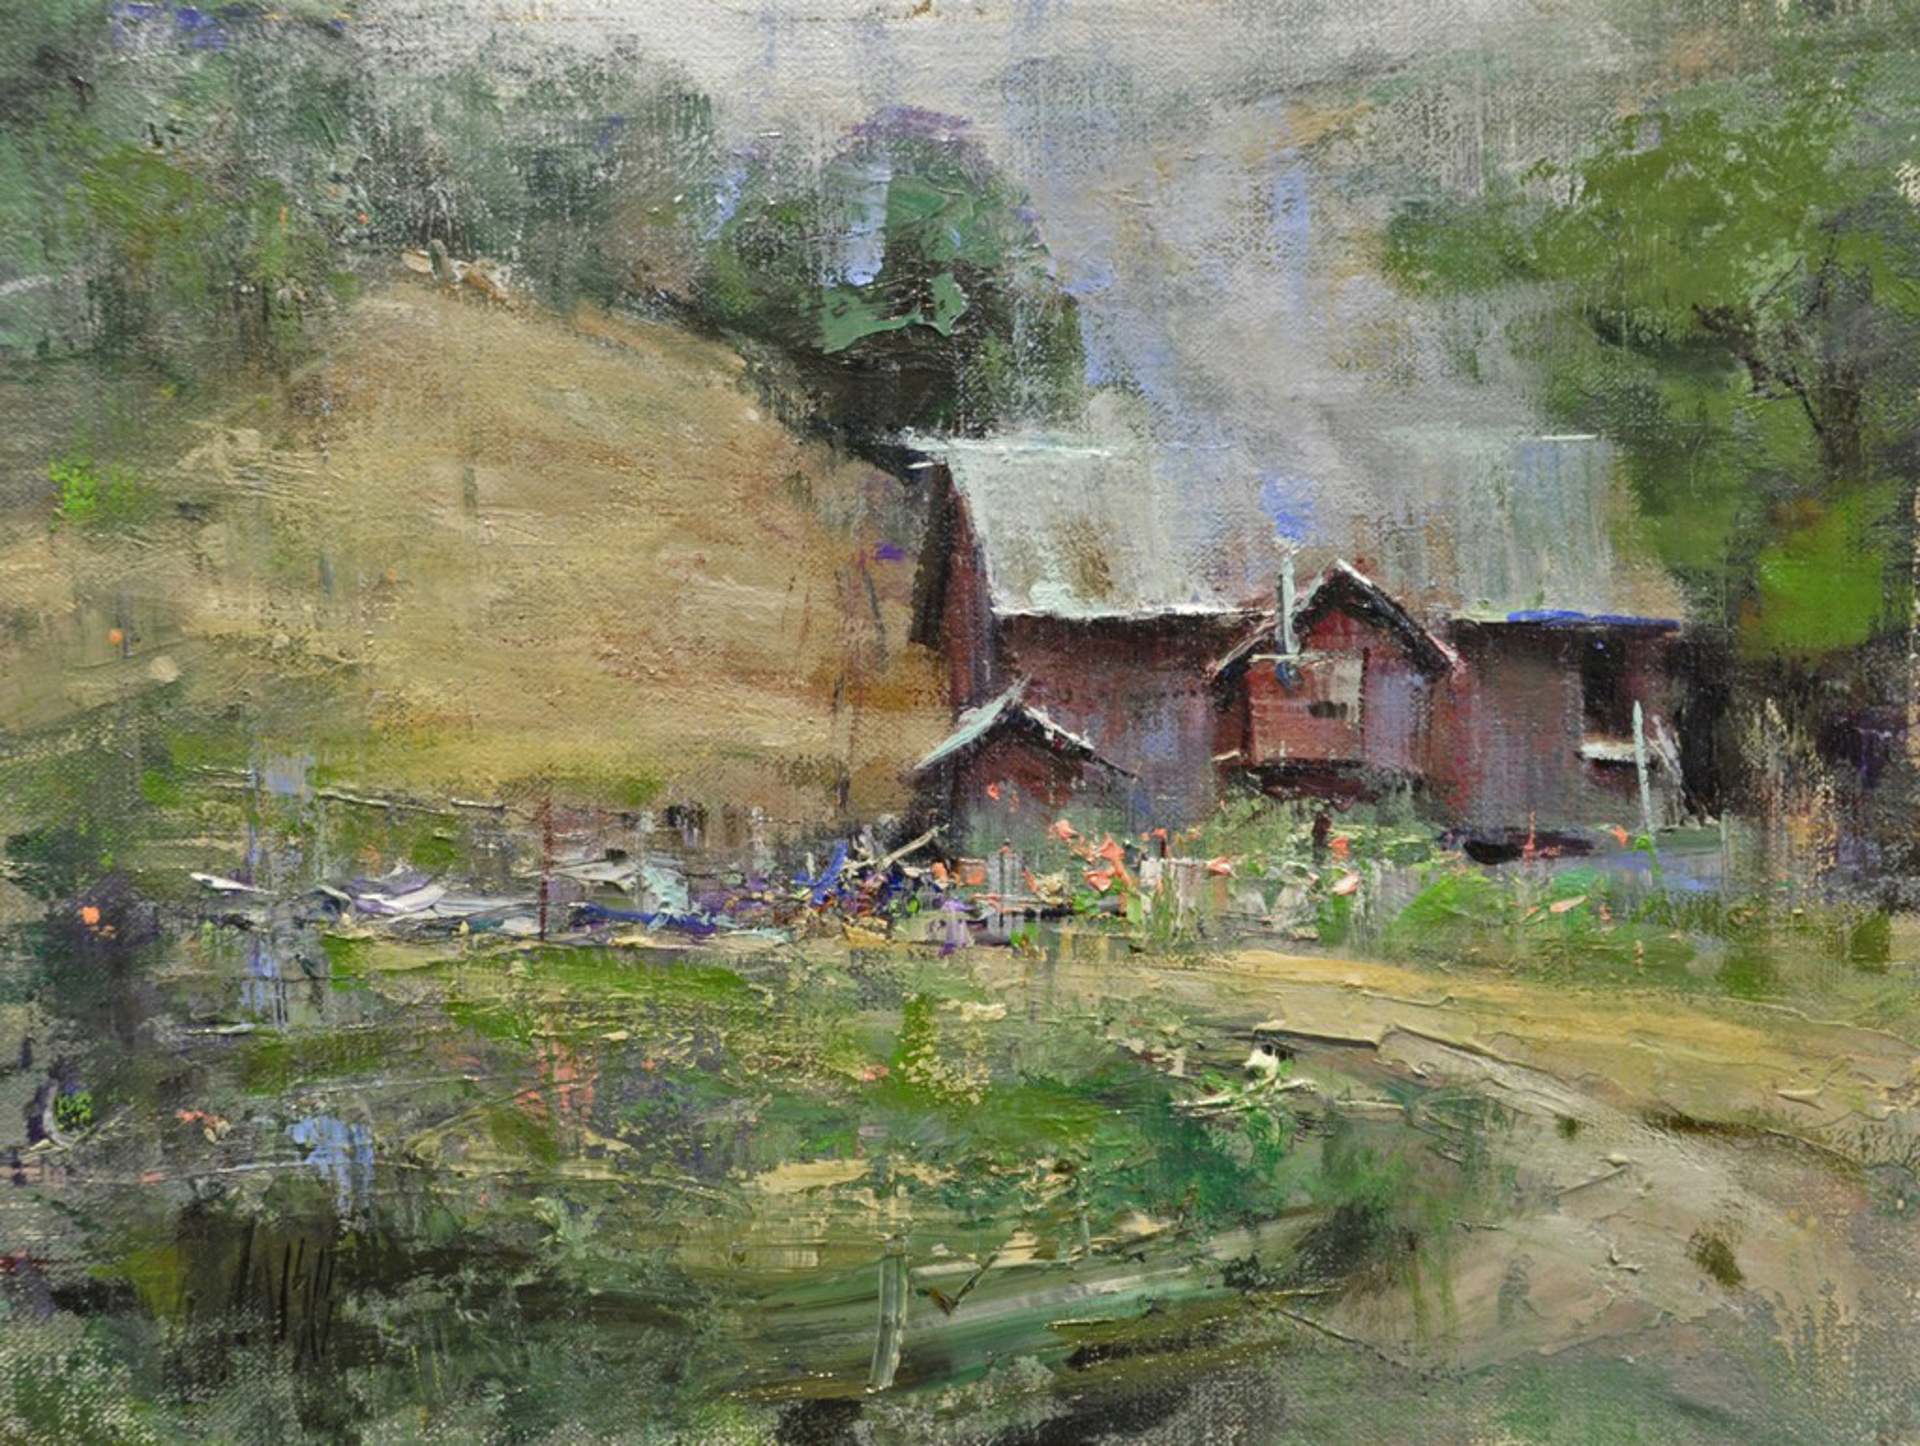 The Smokehouse by Mike Wise